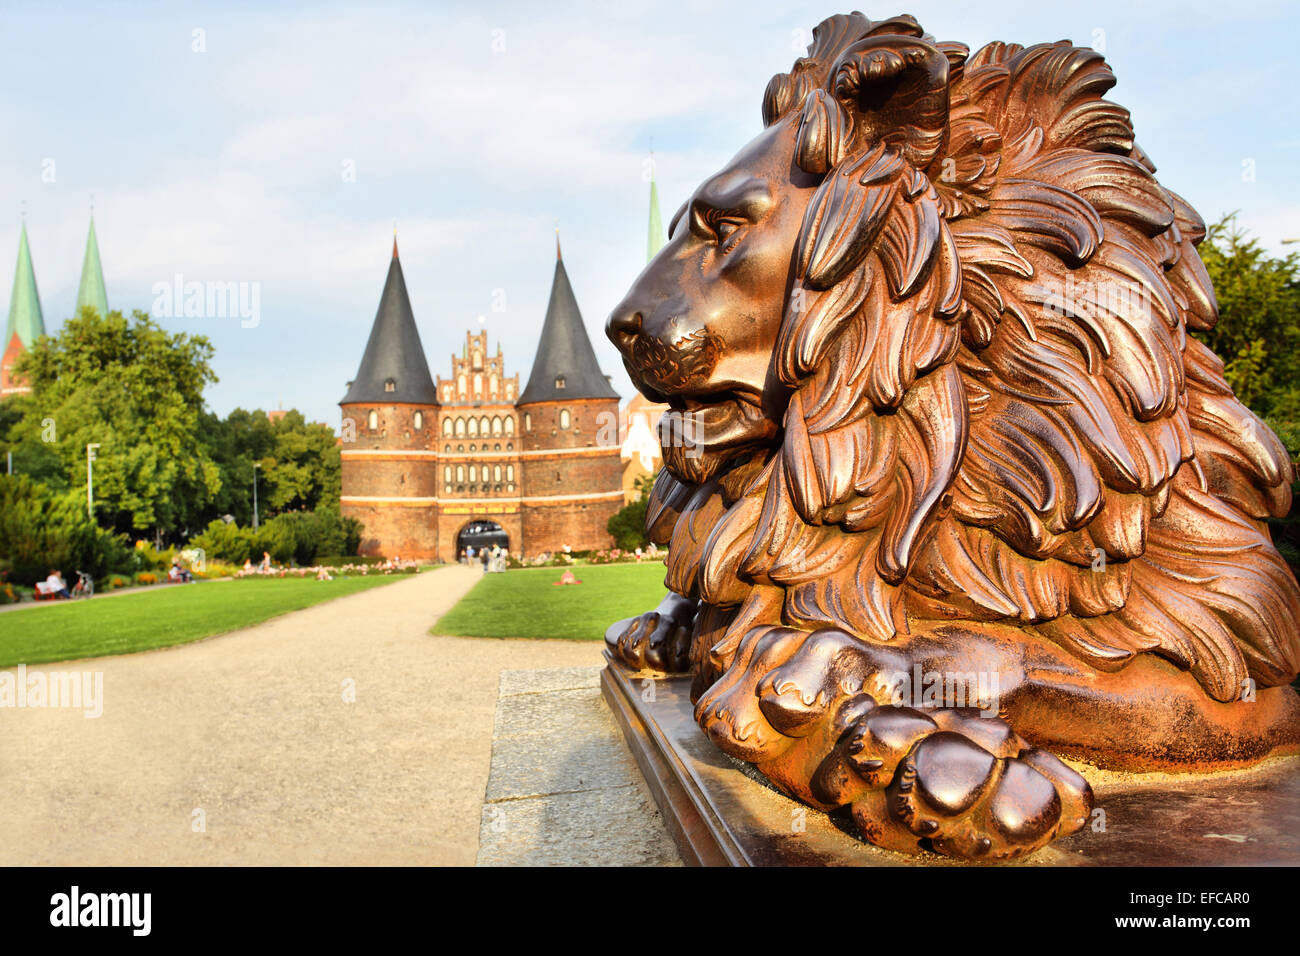 Lion beside Holstein Gate (built in 1478), Lubeck, Germany - Stock Image